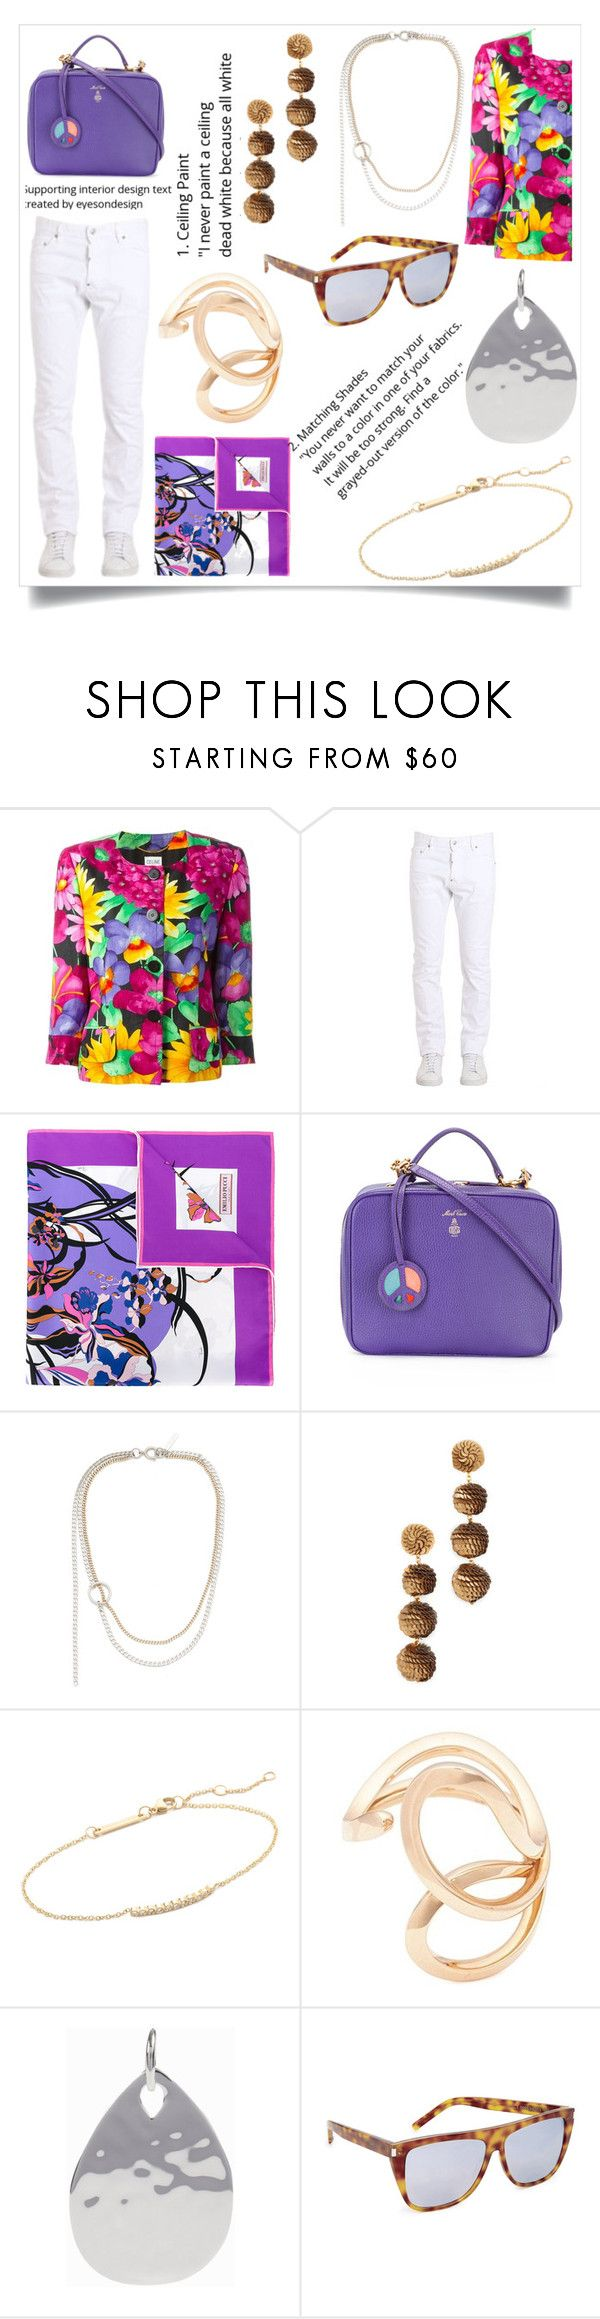 """""""Lead in the dress"""" by emmamegan-5678 ❤ liked on Polyvore featuring Dsquared2, Emilio Pucci, Mark Cross, Justine Clenquet, Deepa Gurnani, ZoÃ« Chicco, FerrariFirenze, Monica Vinader, Yves Saint Laurent and modern"""